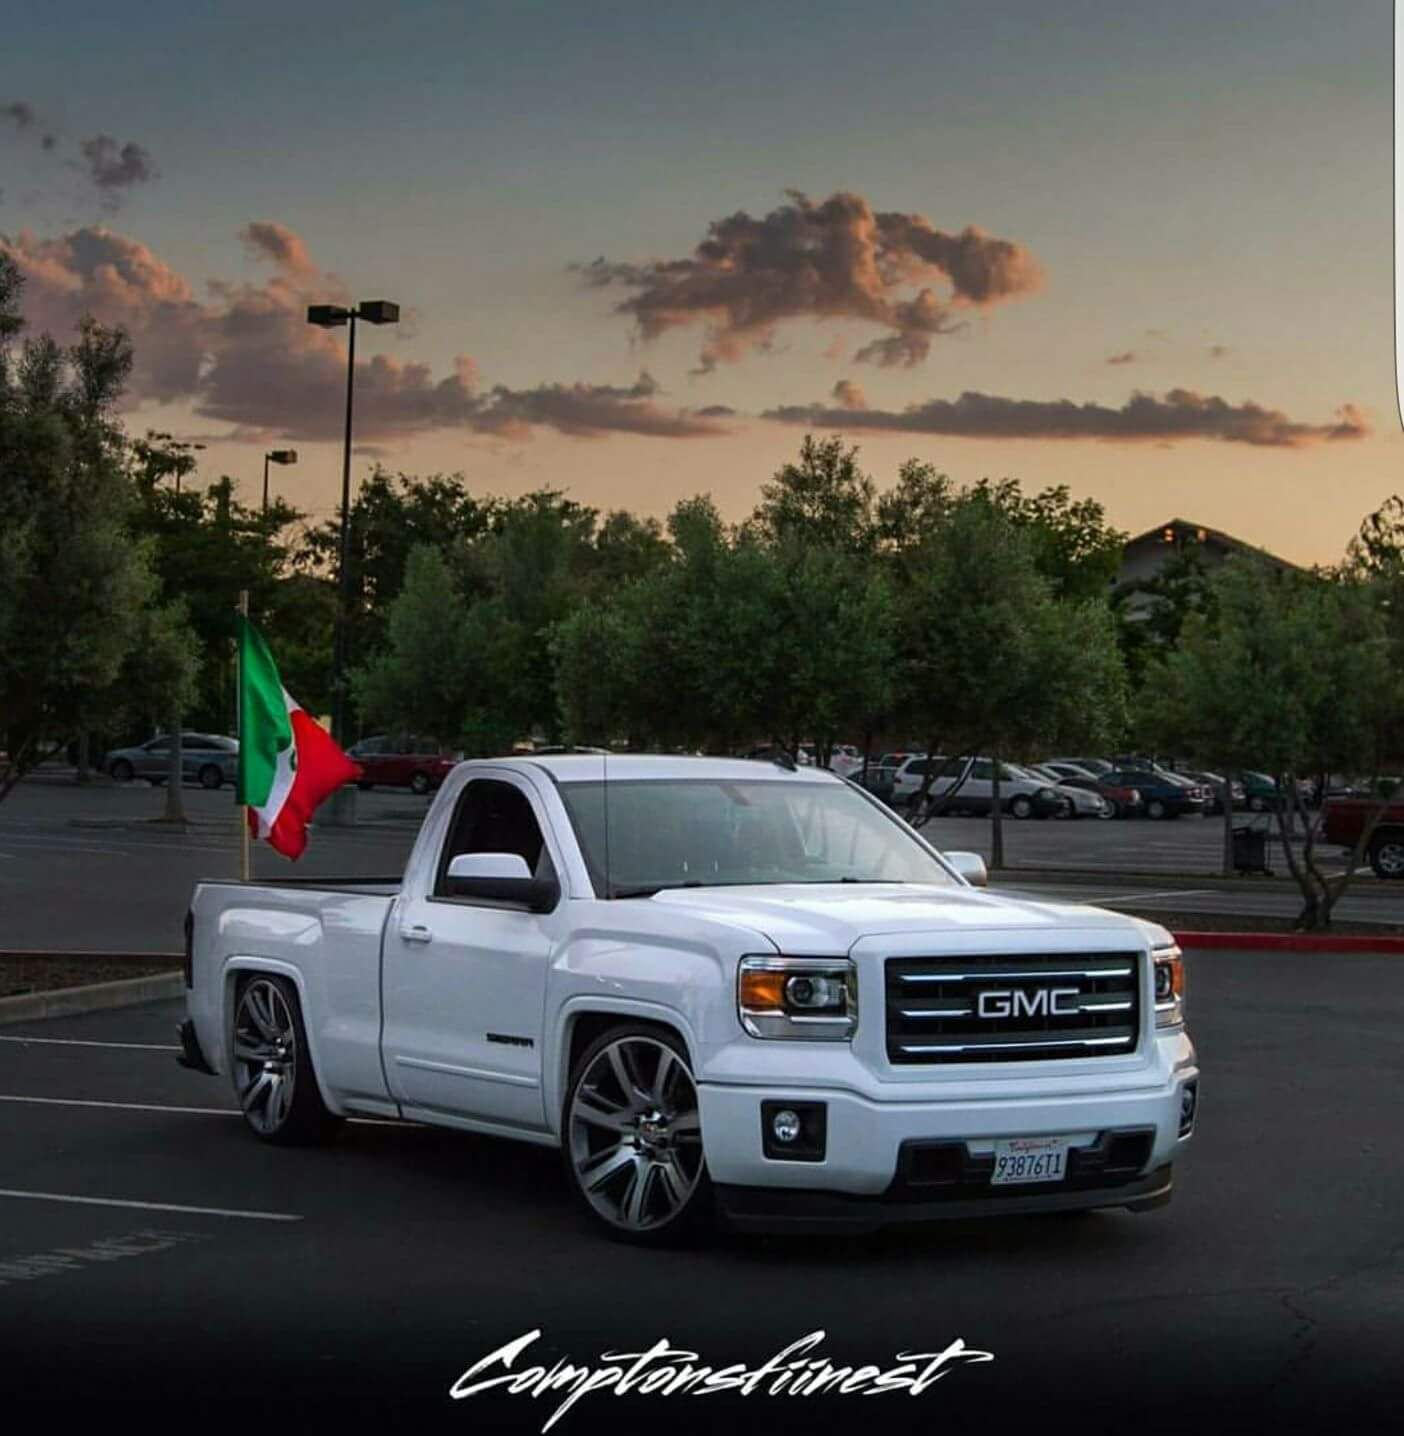 Pin By Jesusleon21 On Dropped Trucks Dropped Trucks Pink Chevy Trucks Chevy Trucks